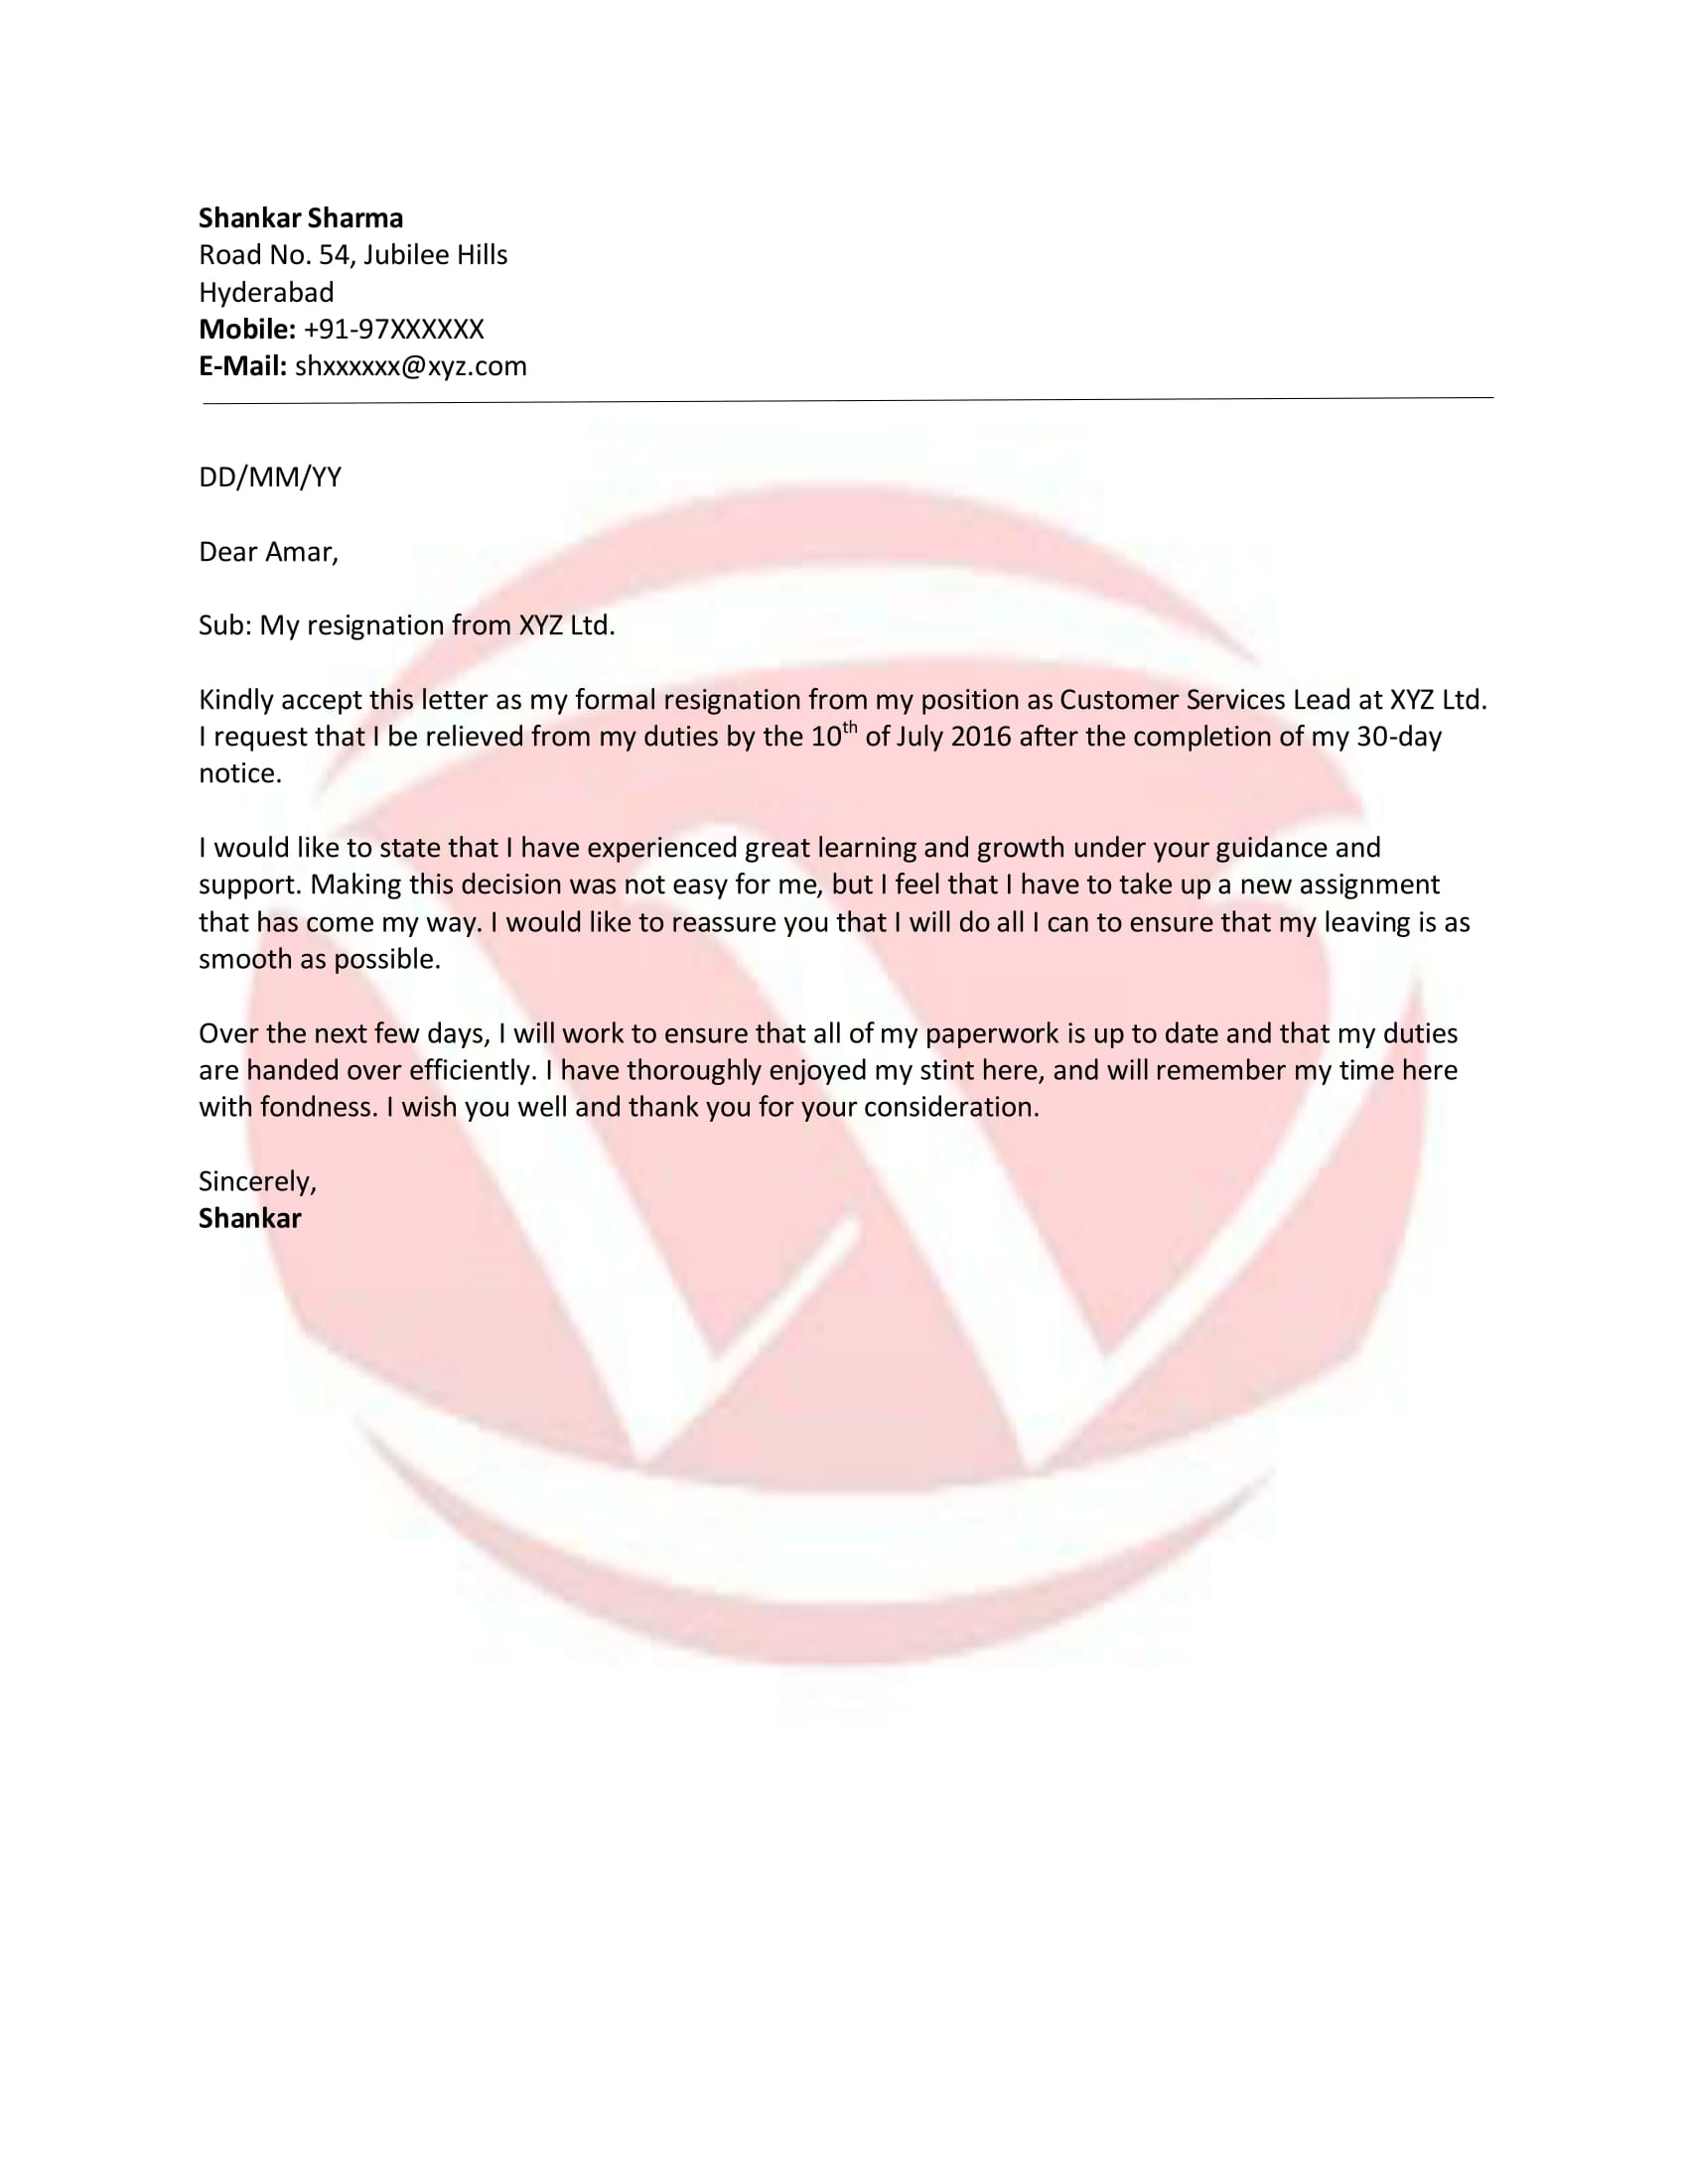 Resignation sample letter format download letter format templates resignation sample letter spiritdancerdesigns Image collections